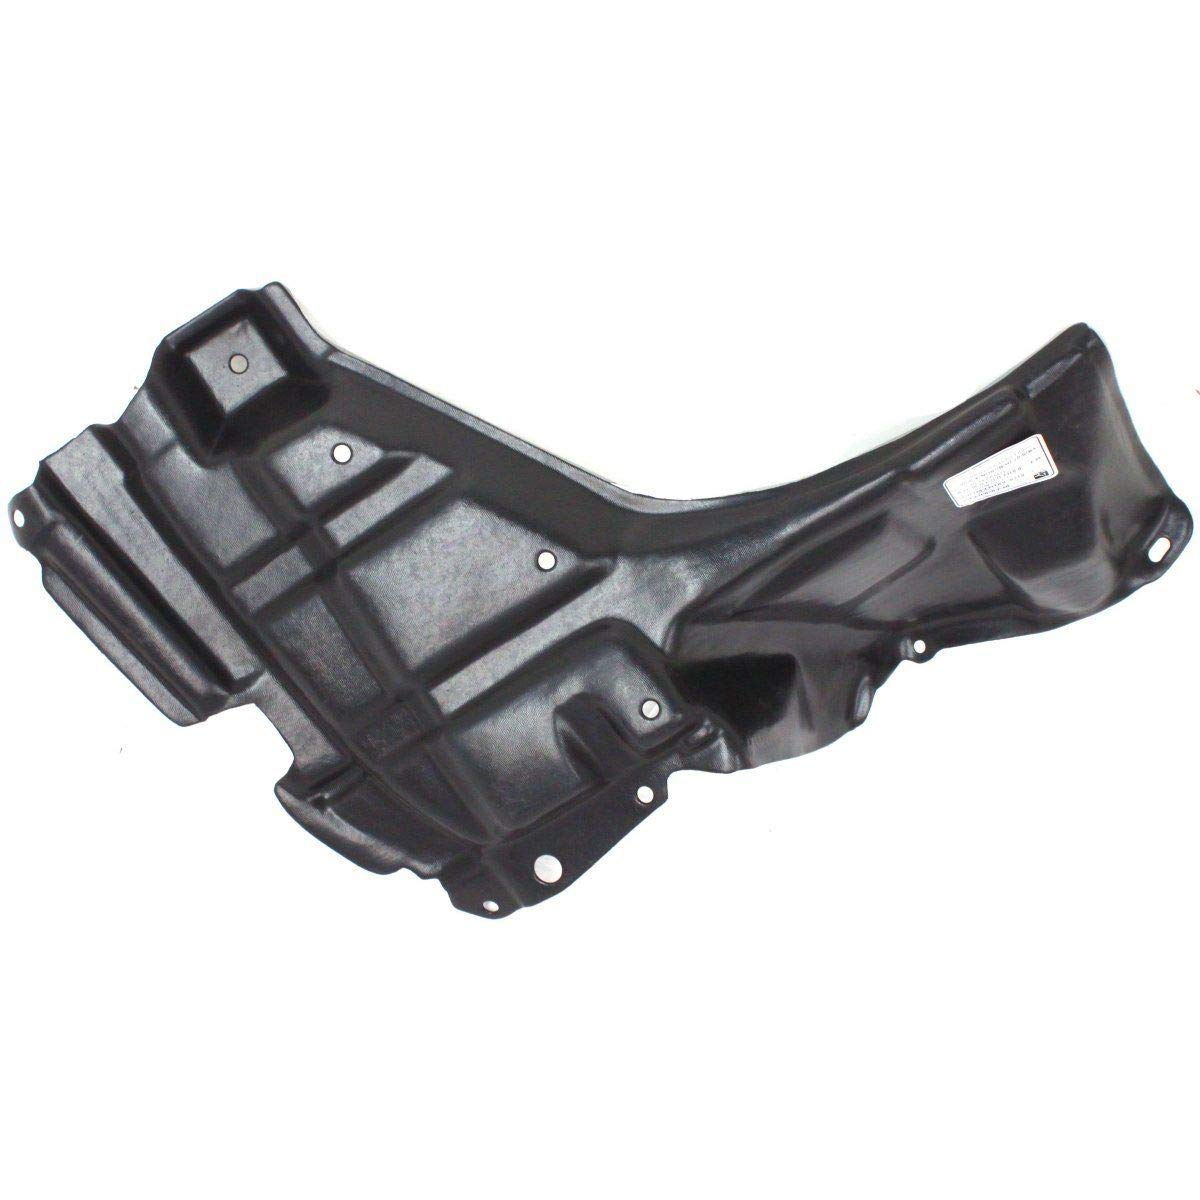 New Front Right Passenger Side Undercar Shield For 2006-2012 Toyota Yaris /& 2008-2012 Scion XD TO1228139 5144152250